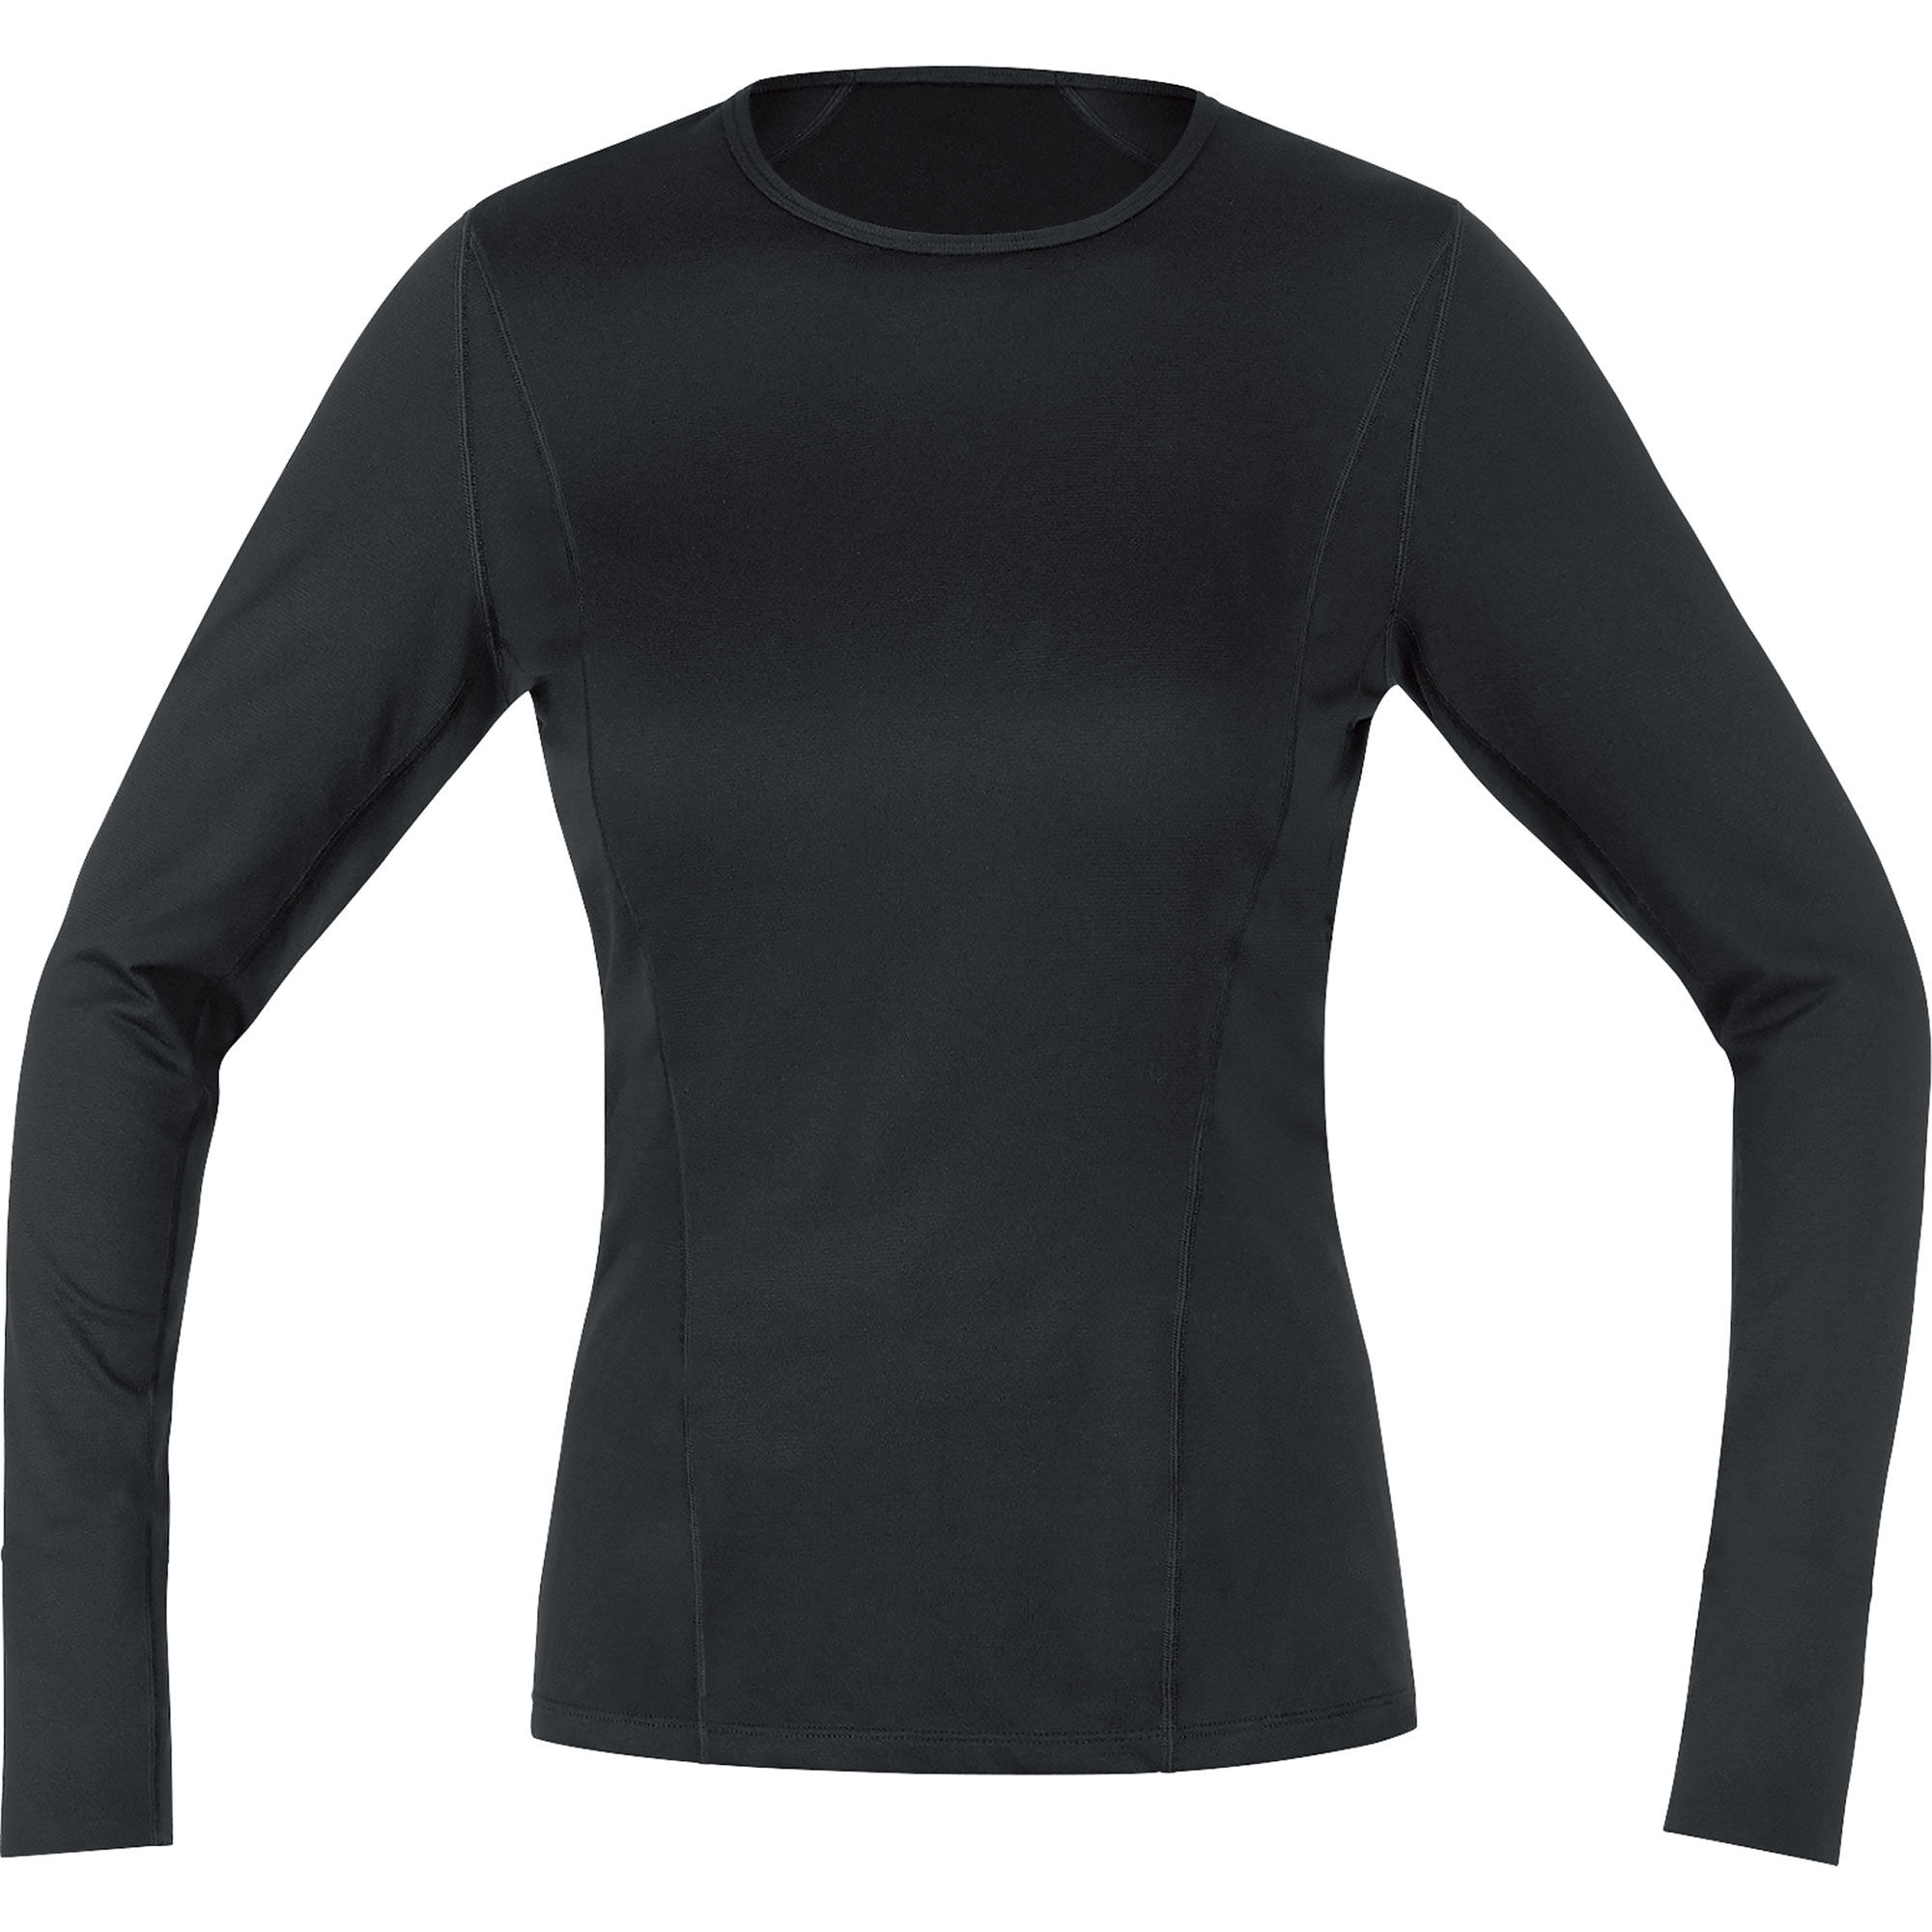 Wiggle gore running wear essential base layer ls shirt for Womens base layer shirt